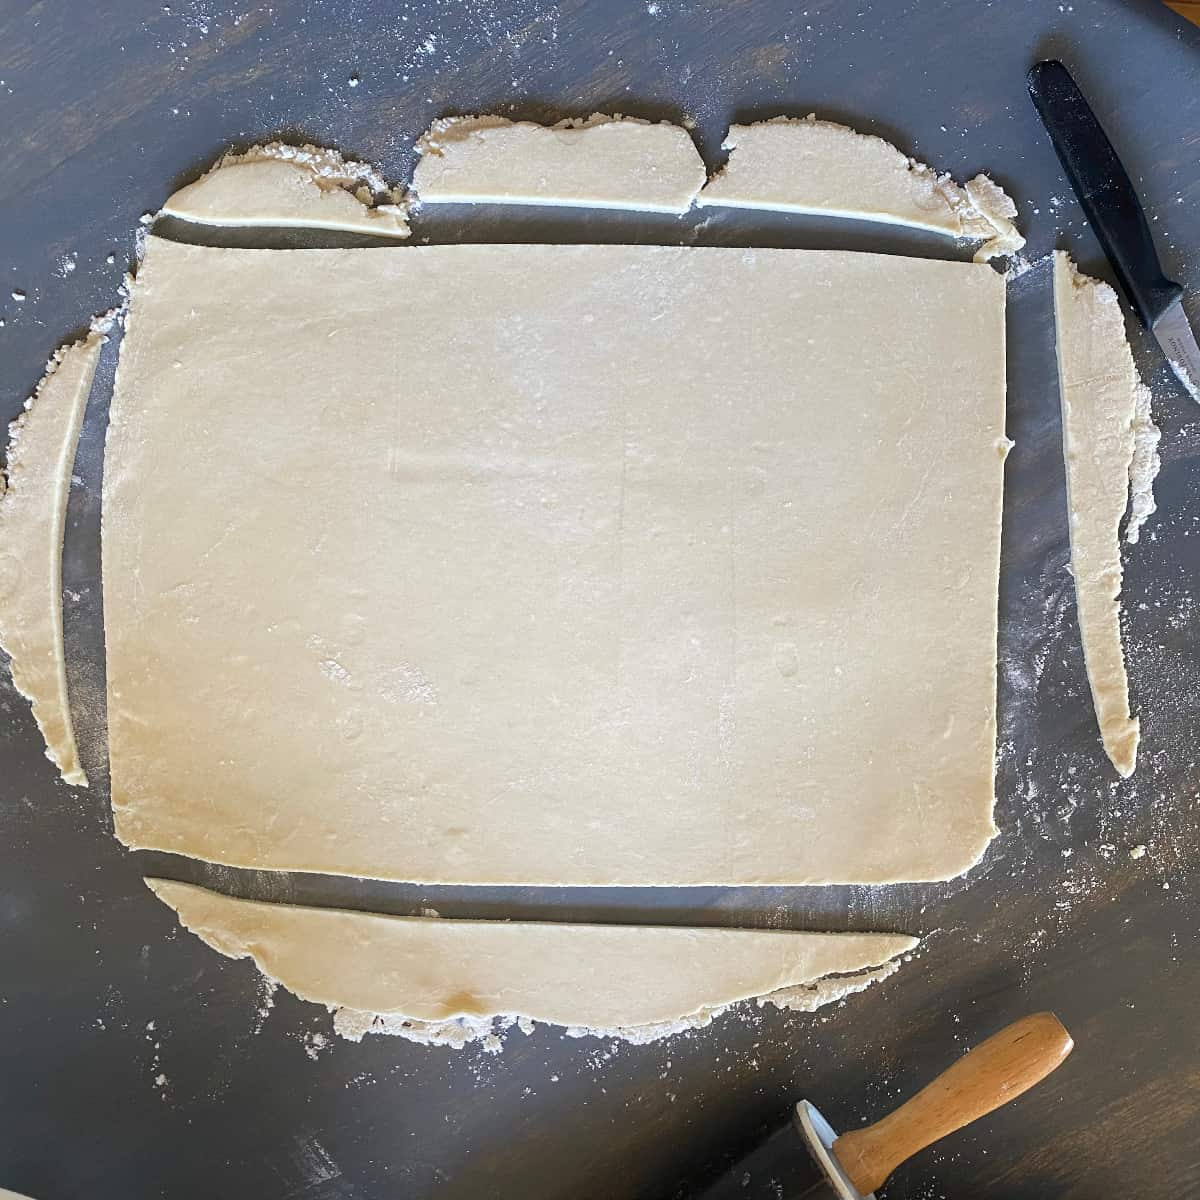 Rolled out puff pastry dough that has been trimmed into a rectangle.